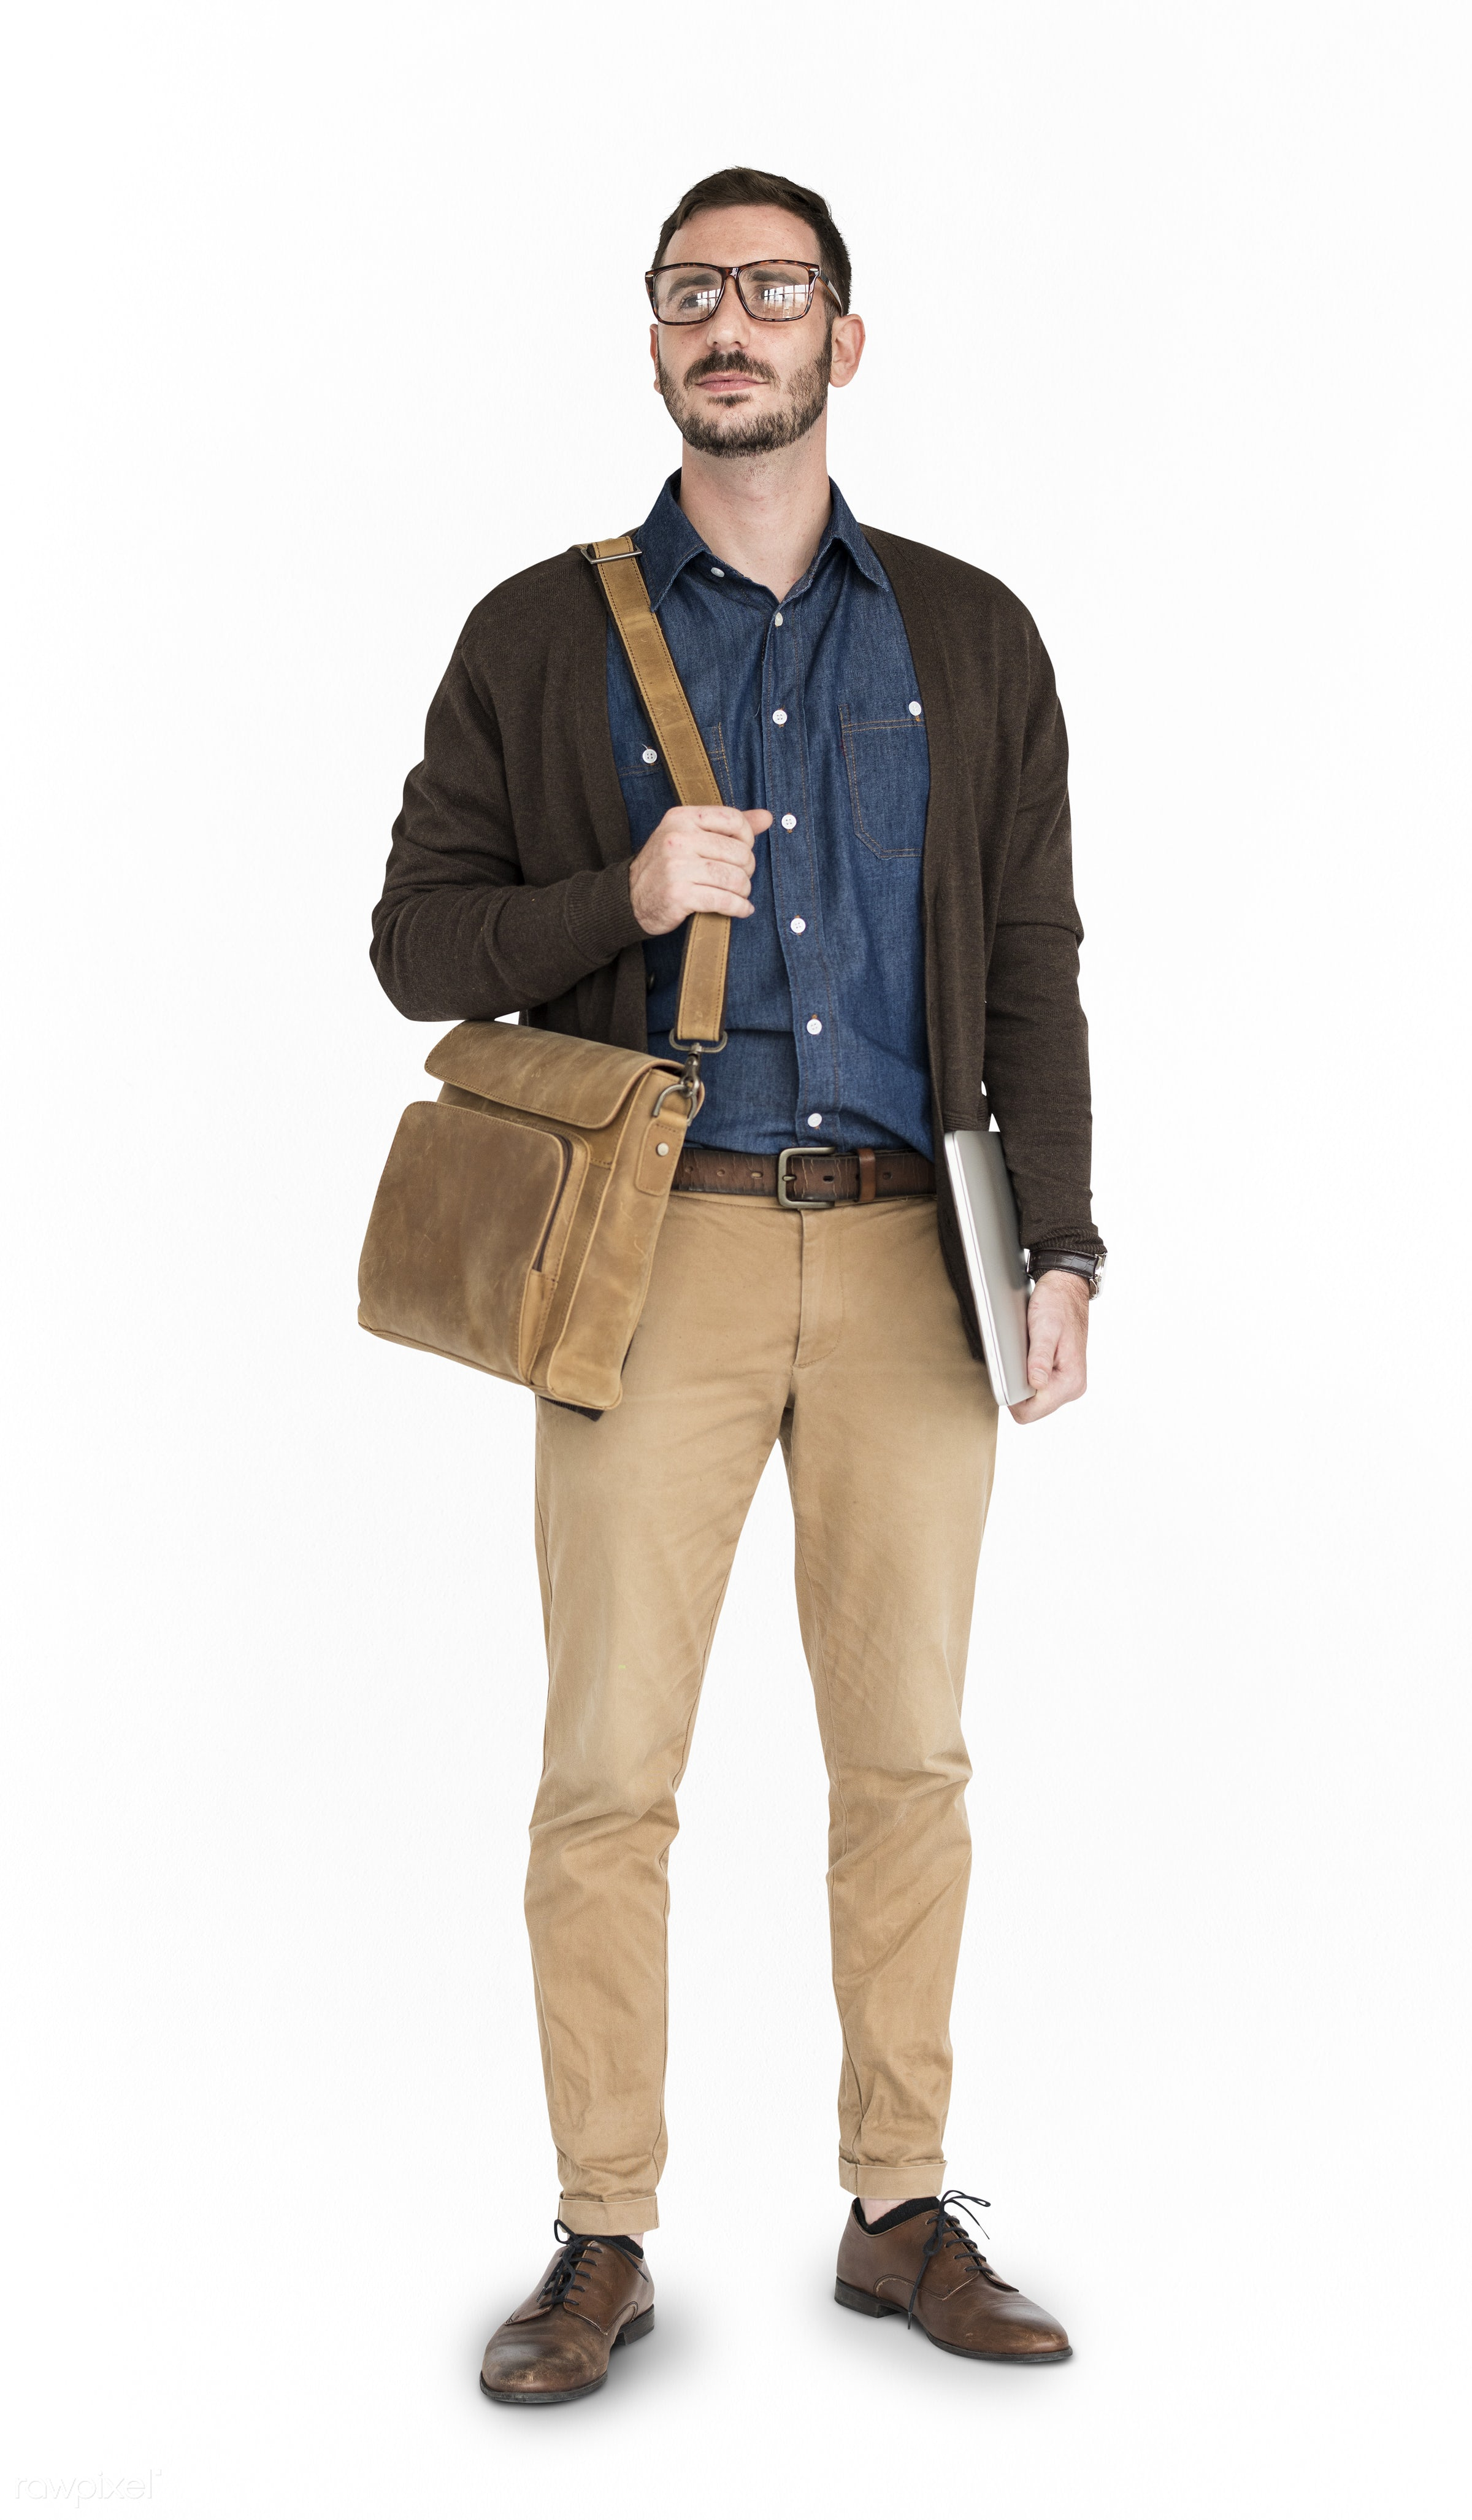 Caucasian Man Neutral Messenger Bag - expression, studio, casual attire, person, messenger bag, isolated on white, people,...